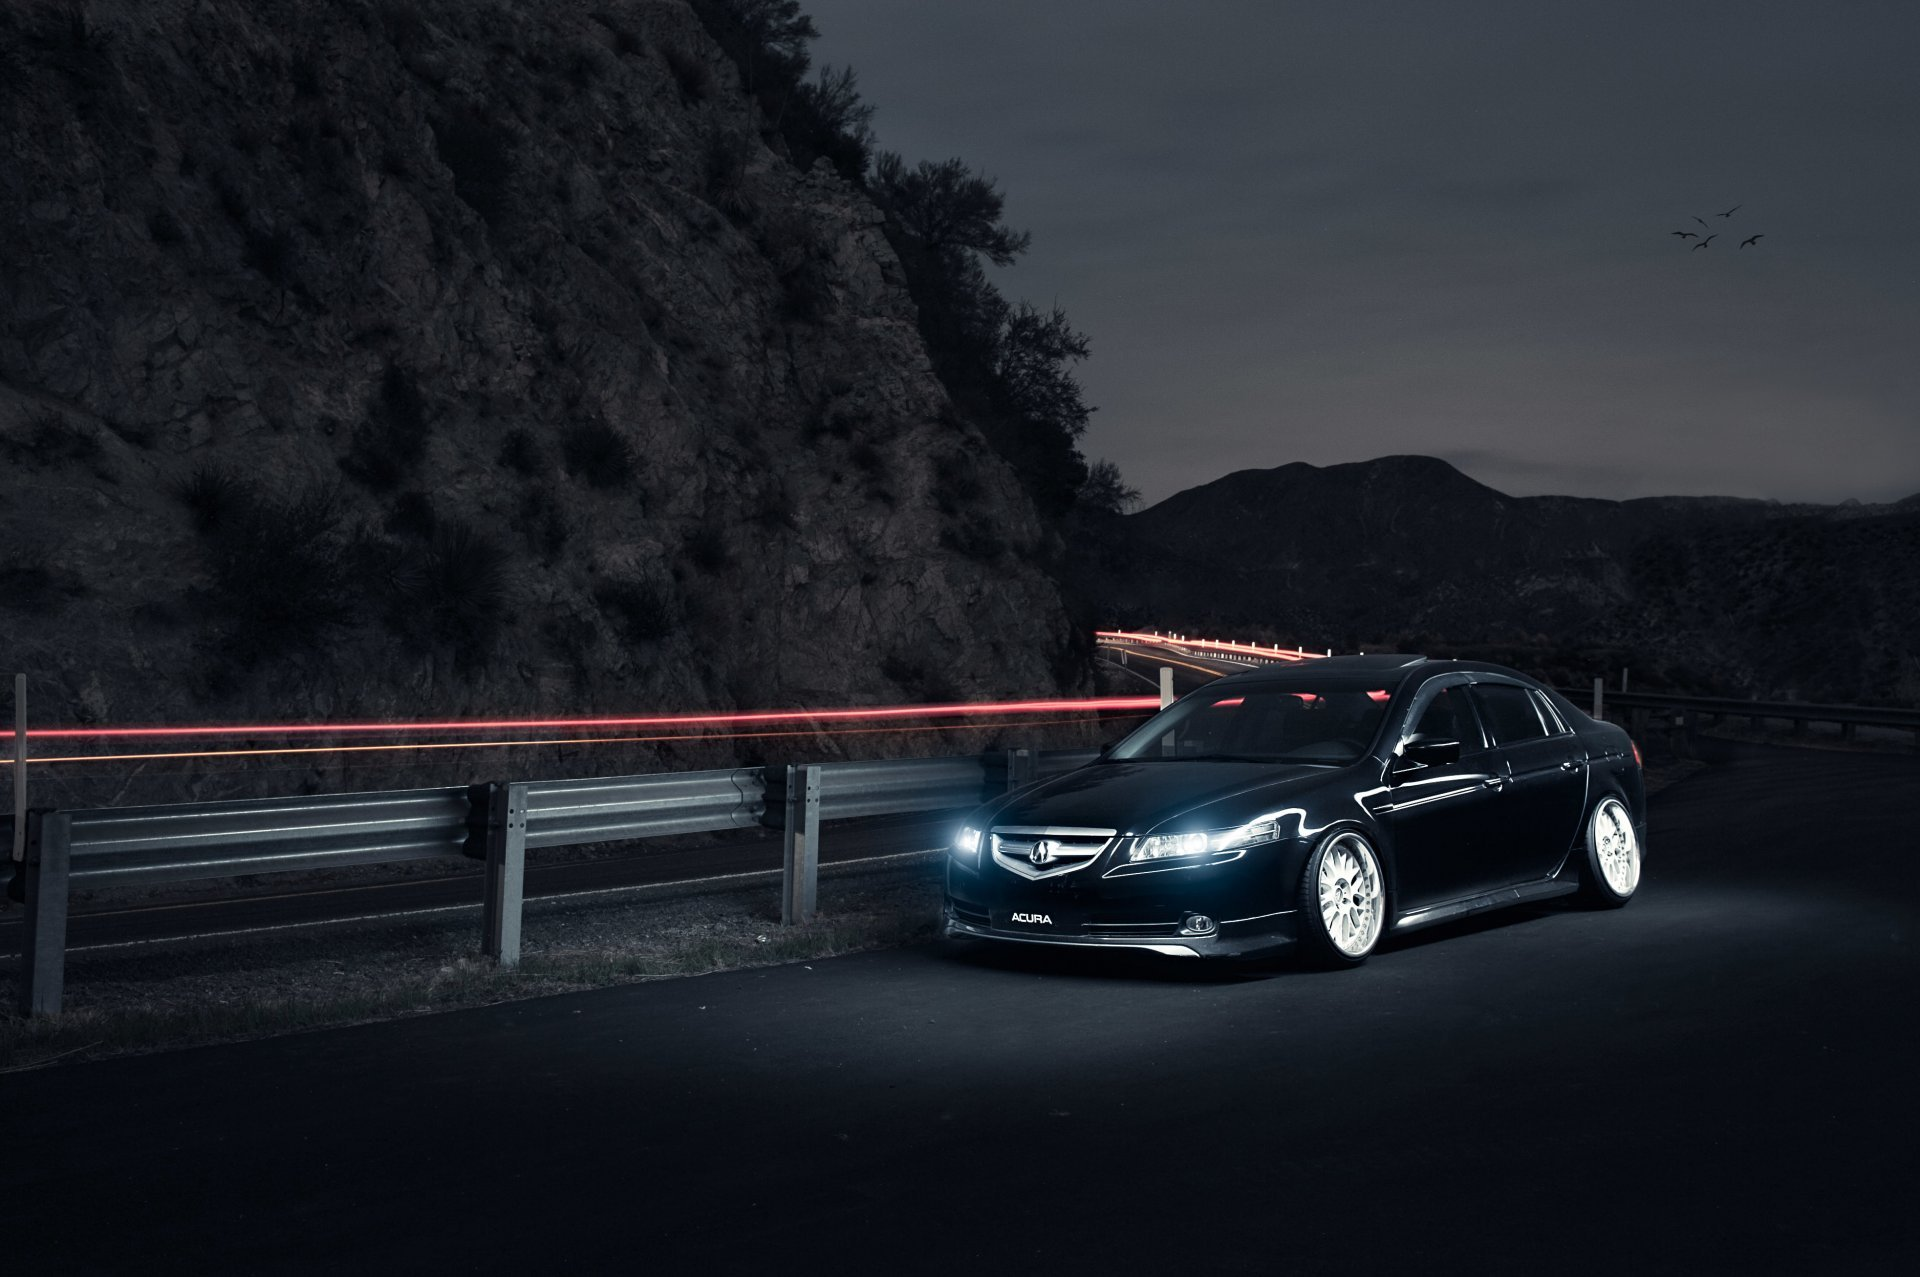 23 Acura Tl Wallpapers On Wallpapersafari